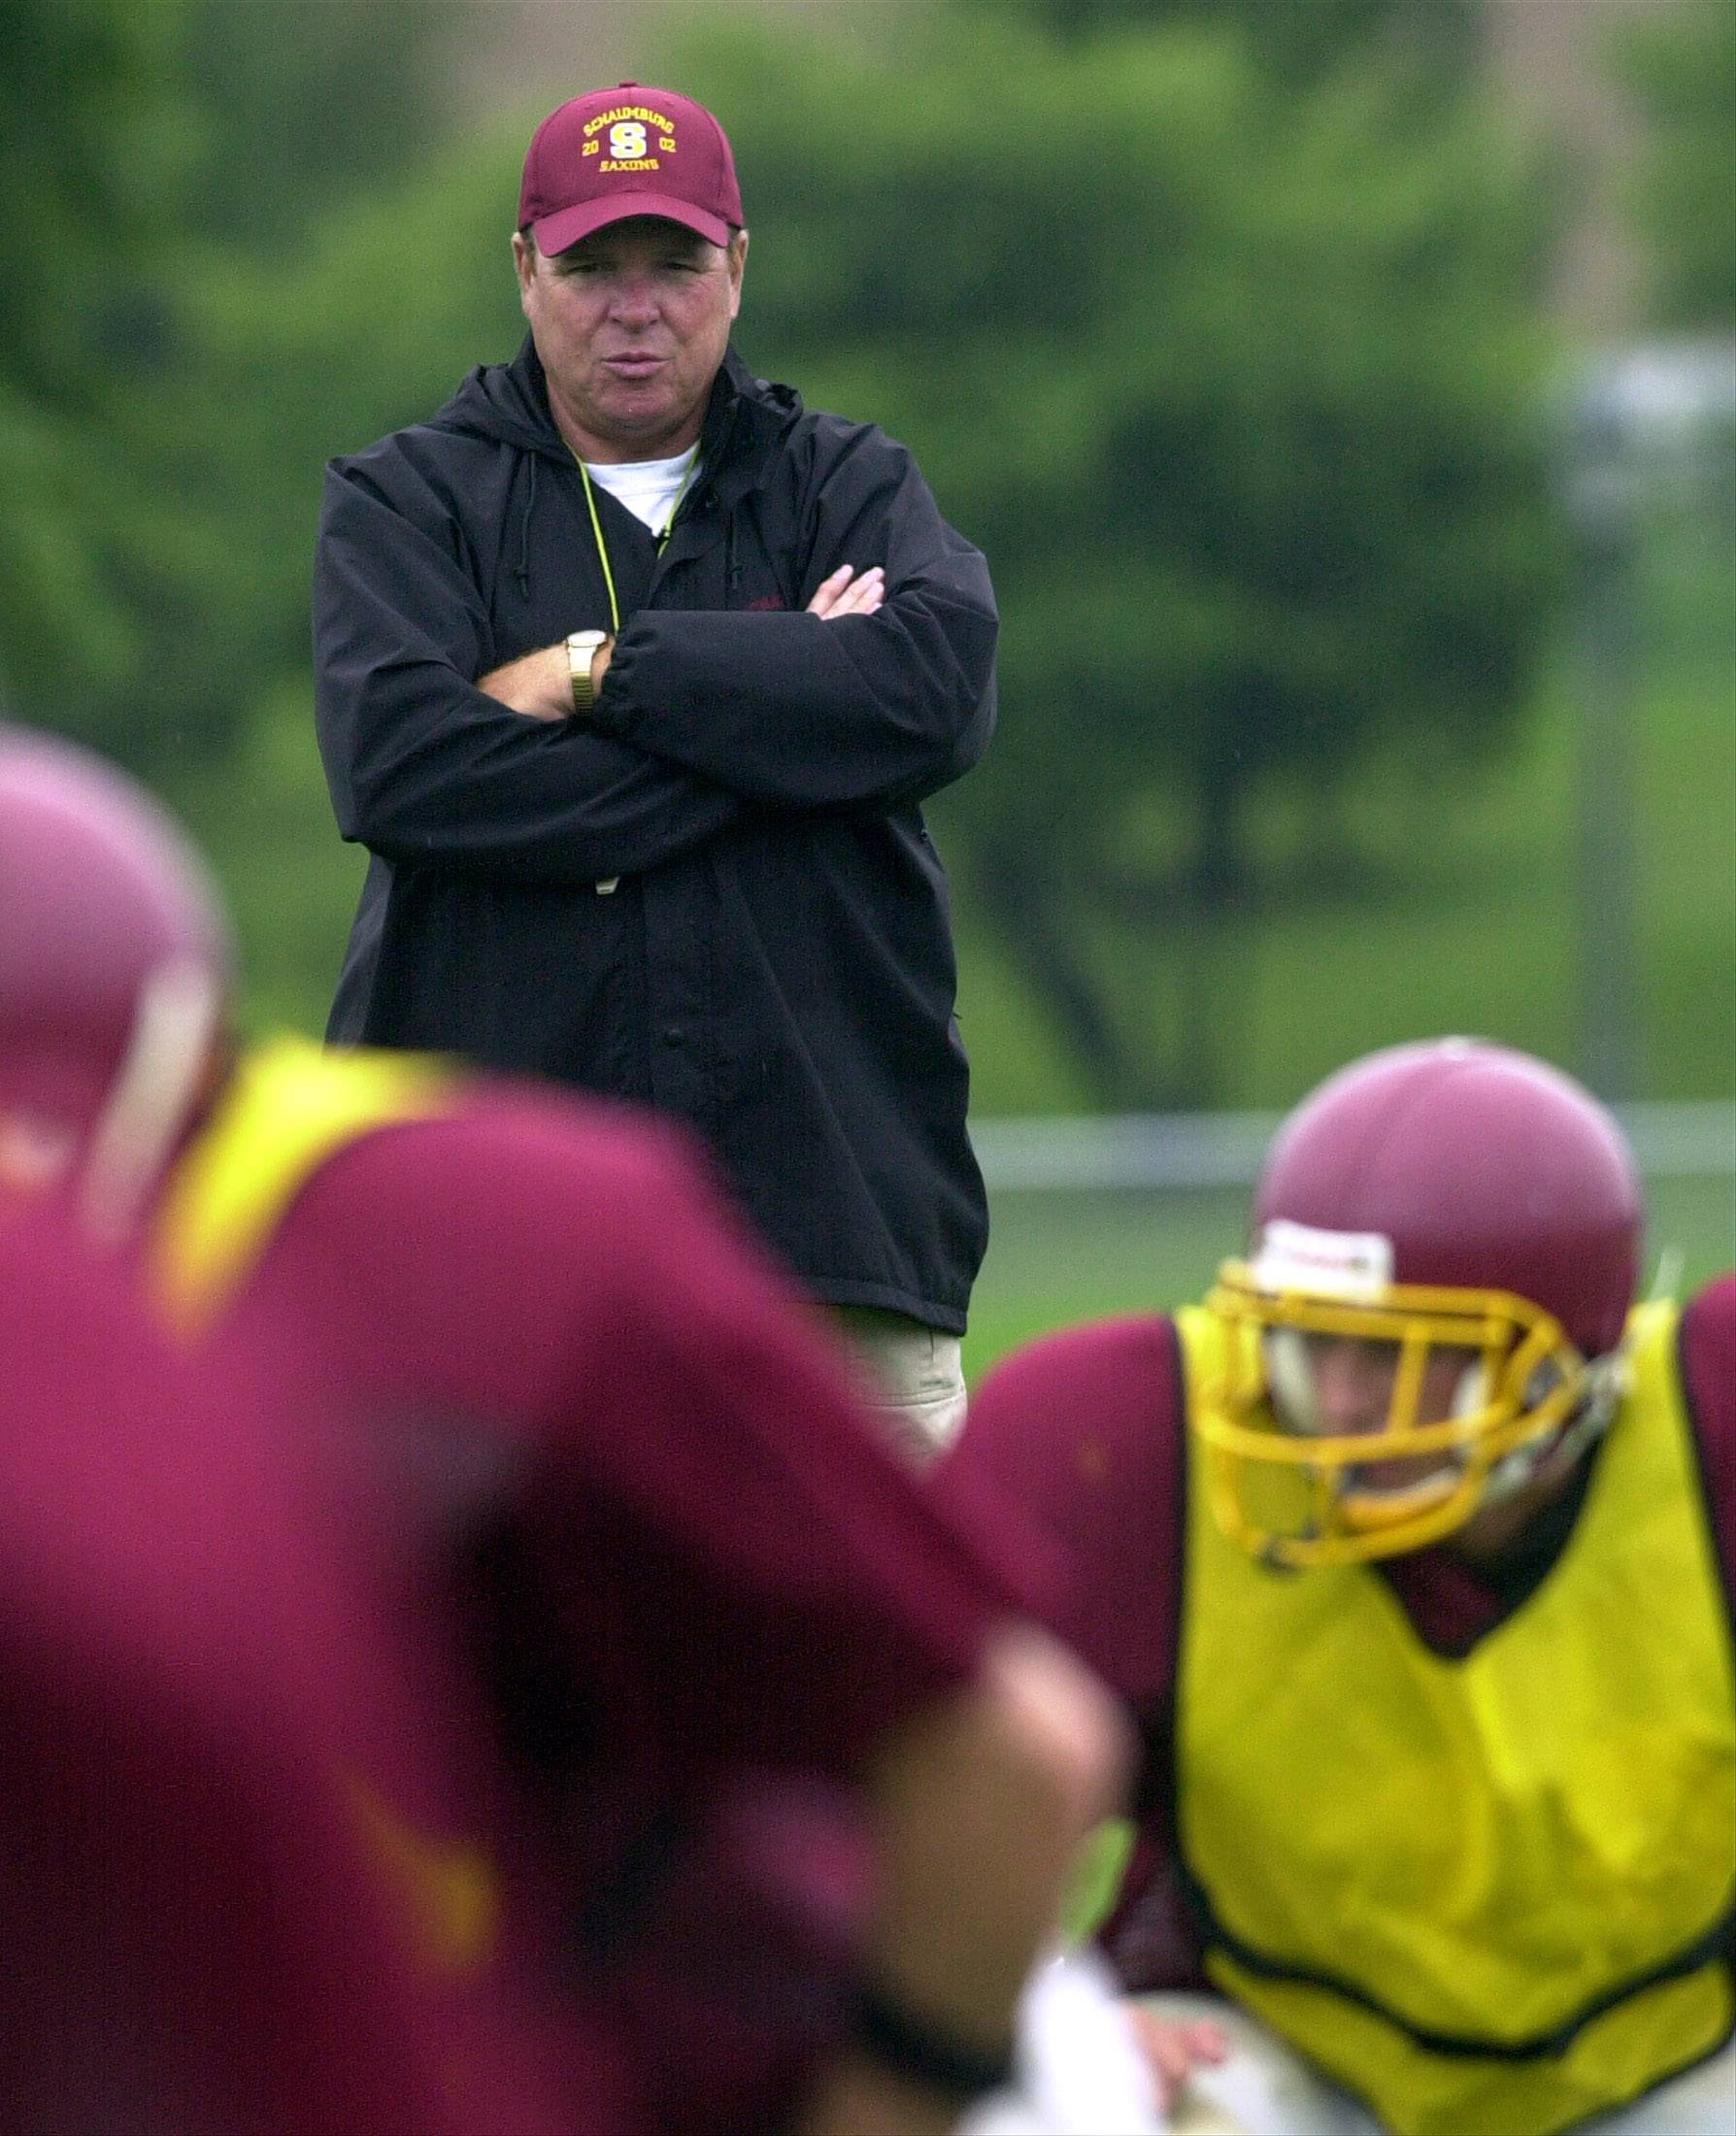 Former Schaumburg High School football coach Tom Cerasani passed away Sunday. He was 71.